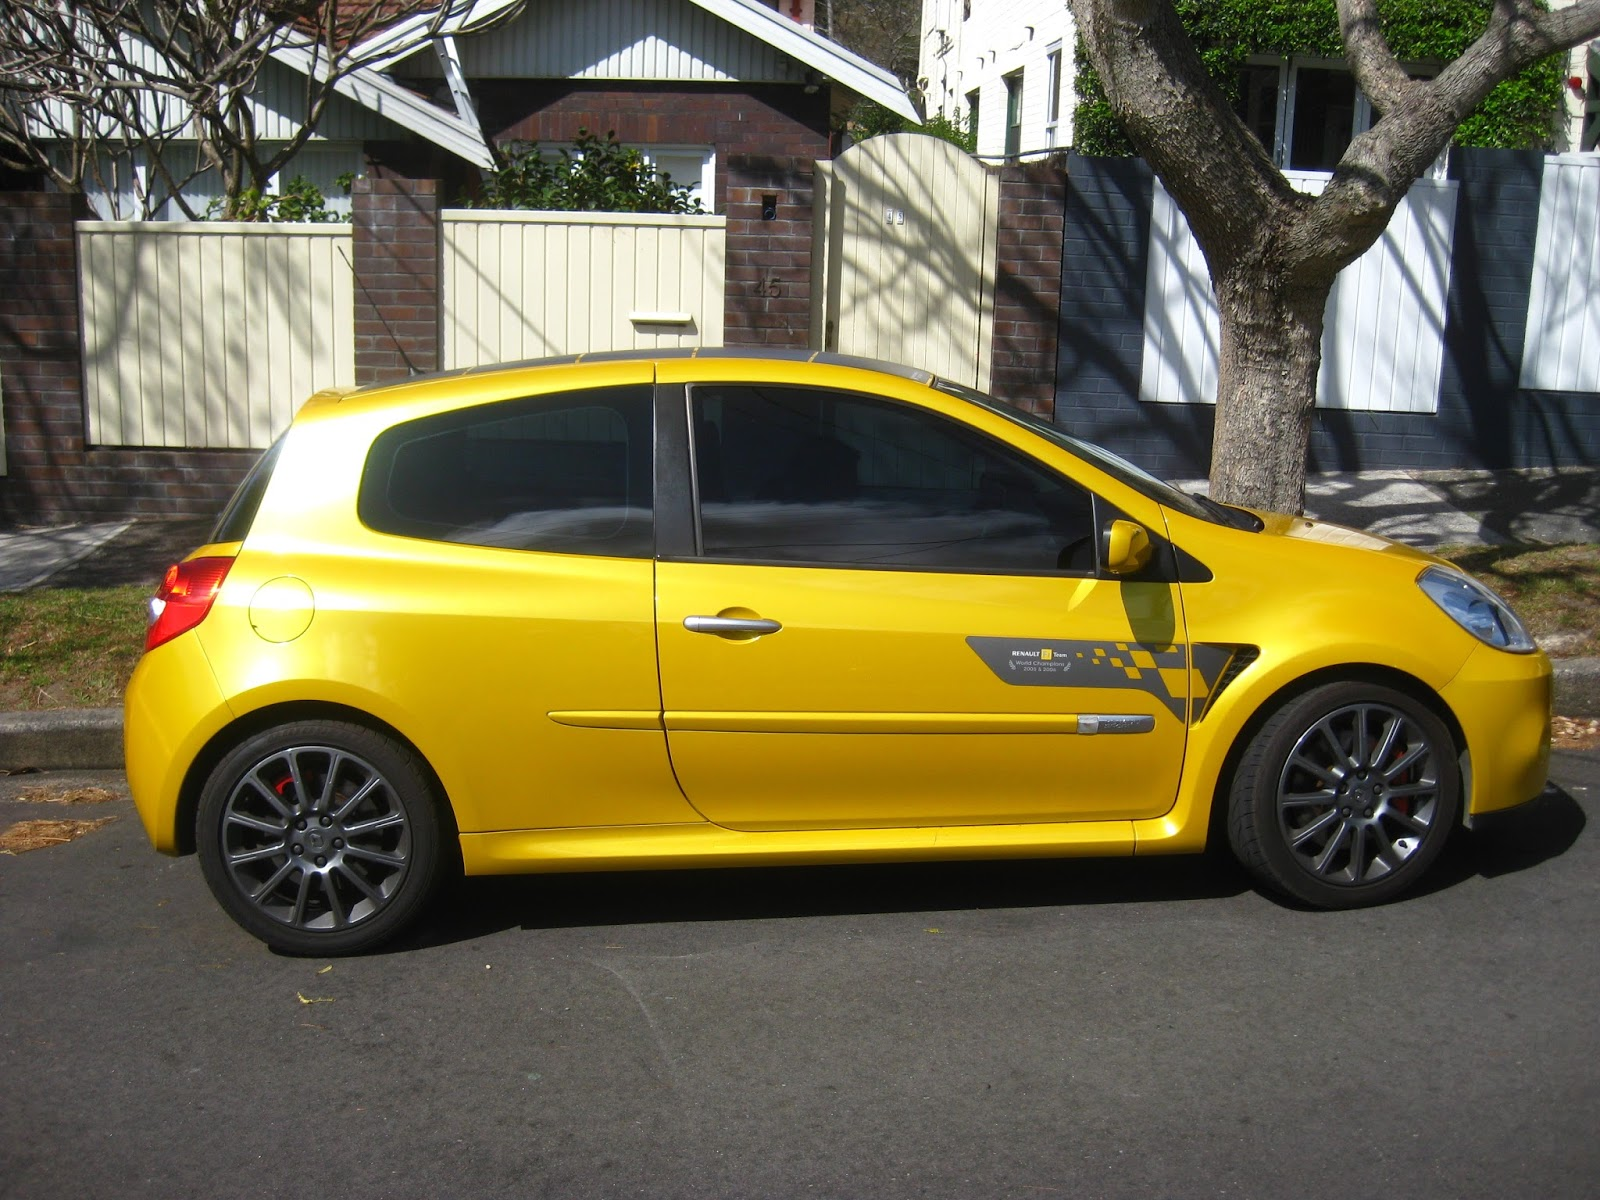 aussie old parked cars 2009 renault clio sport f1 team australian grand prix edition. Black Bedroom Furniture Sets. Home Design Ideas